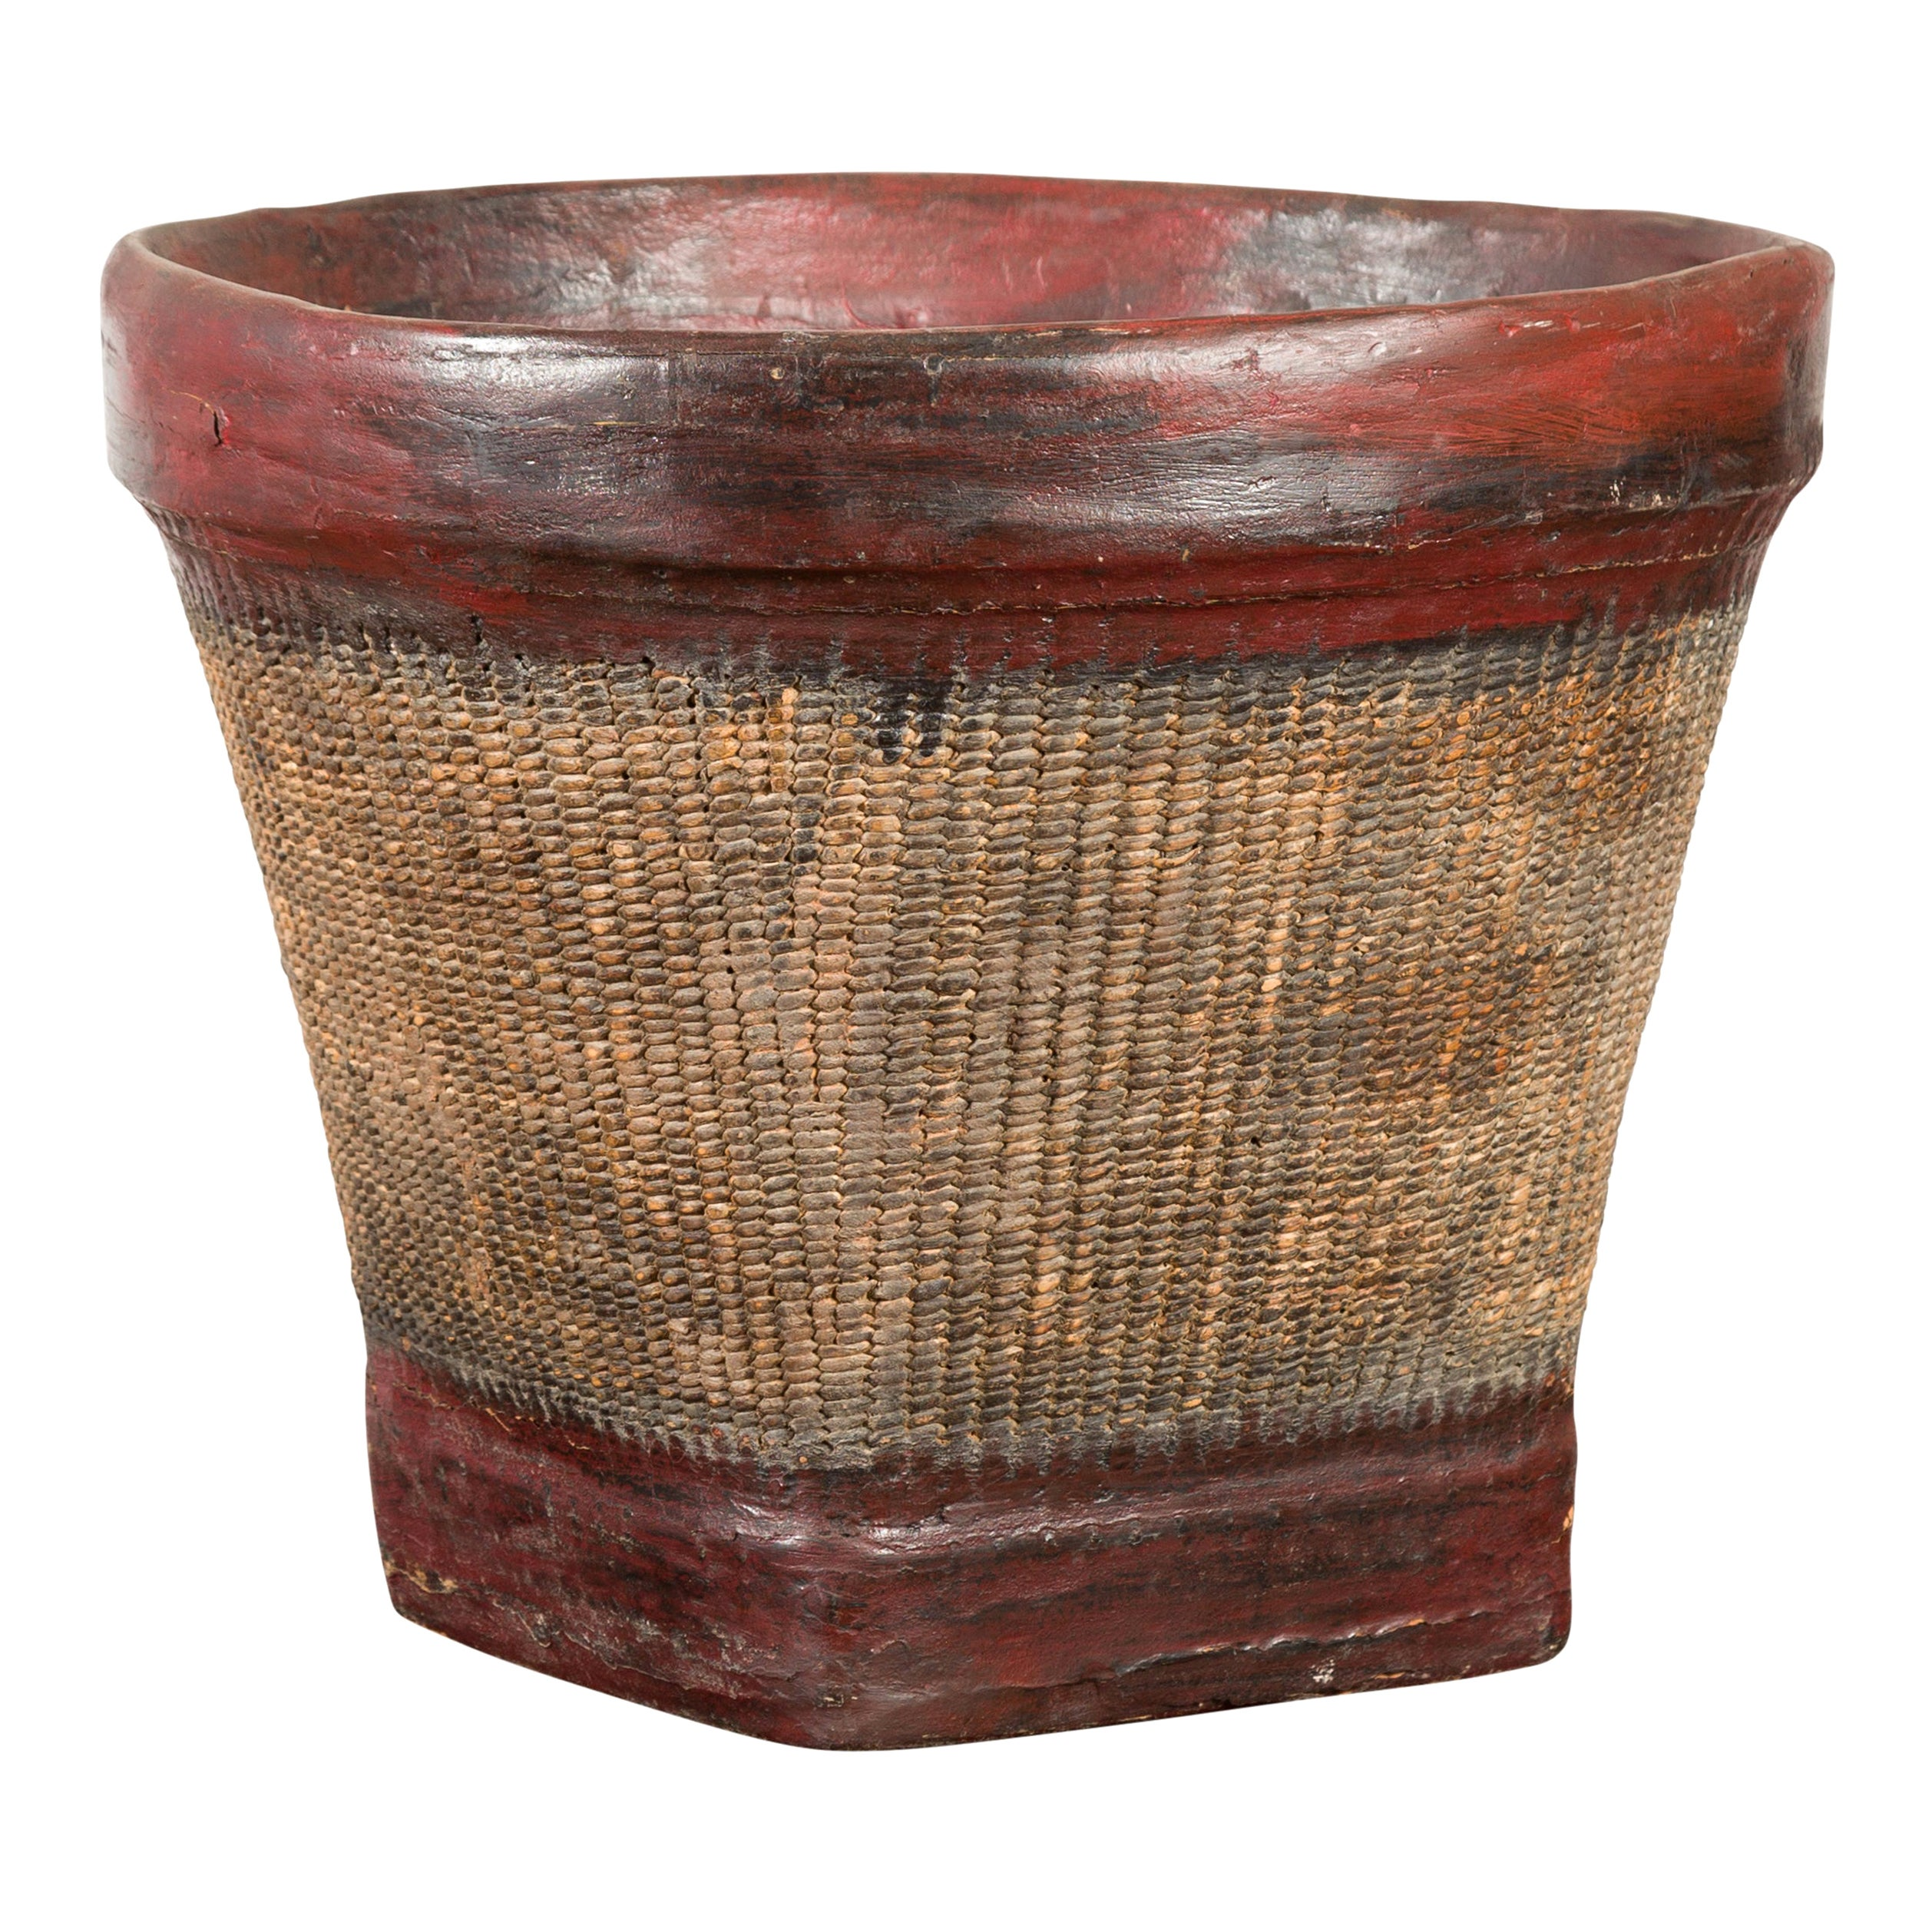 Thai 19th Century Rustic Hand-Woven Rattan Rice Basket with Red Rim